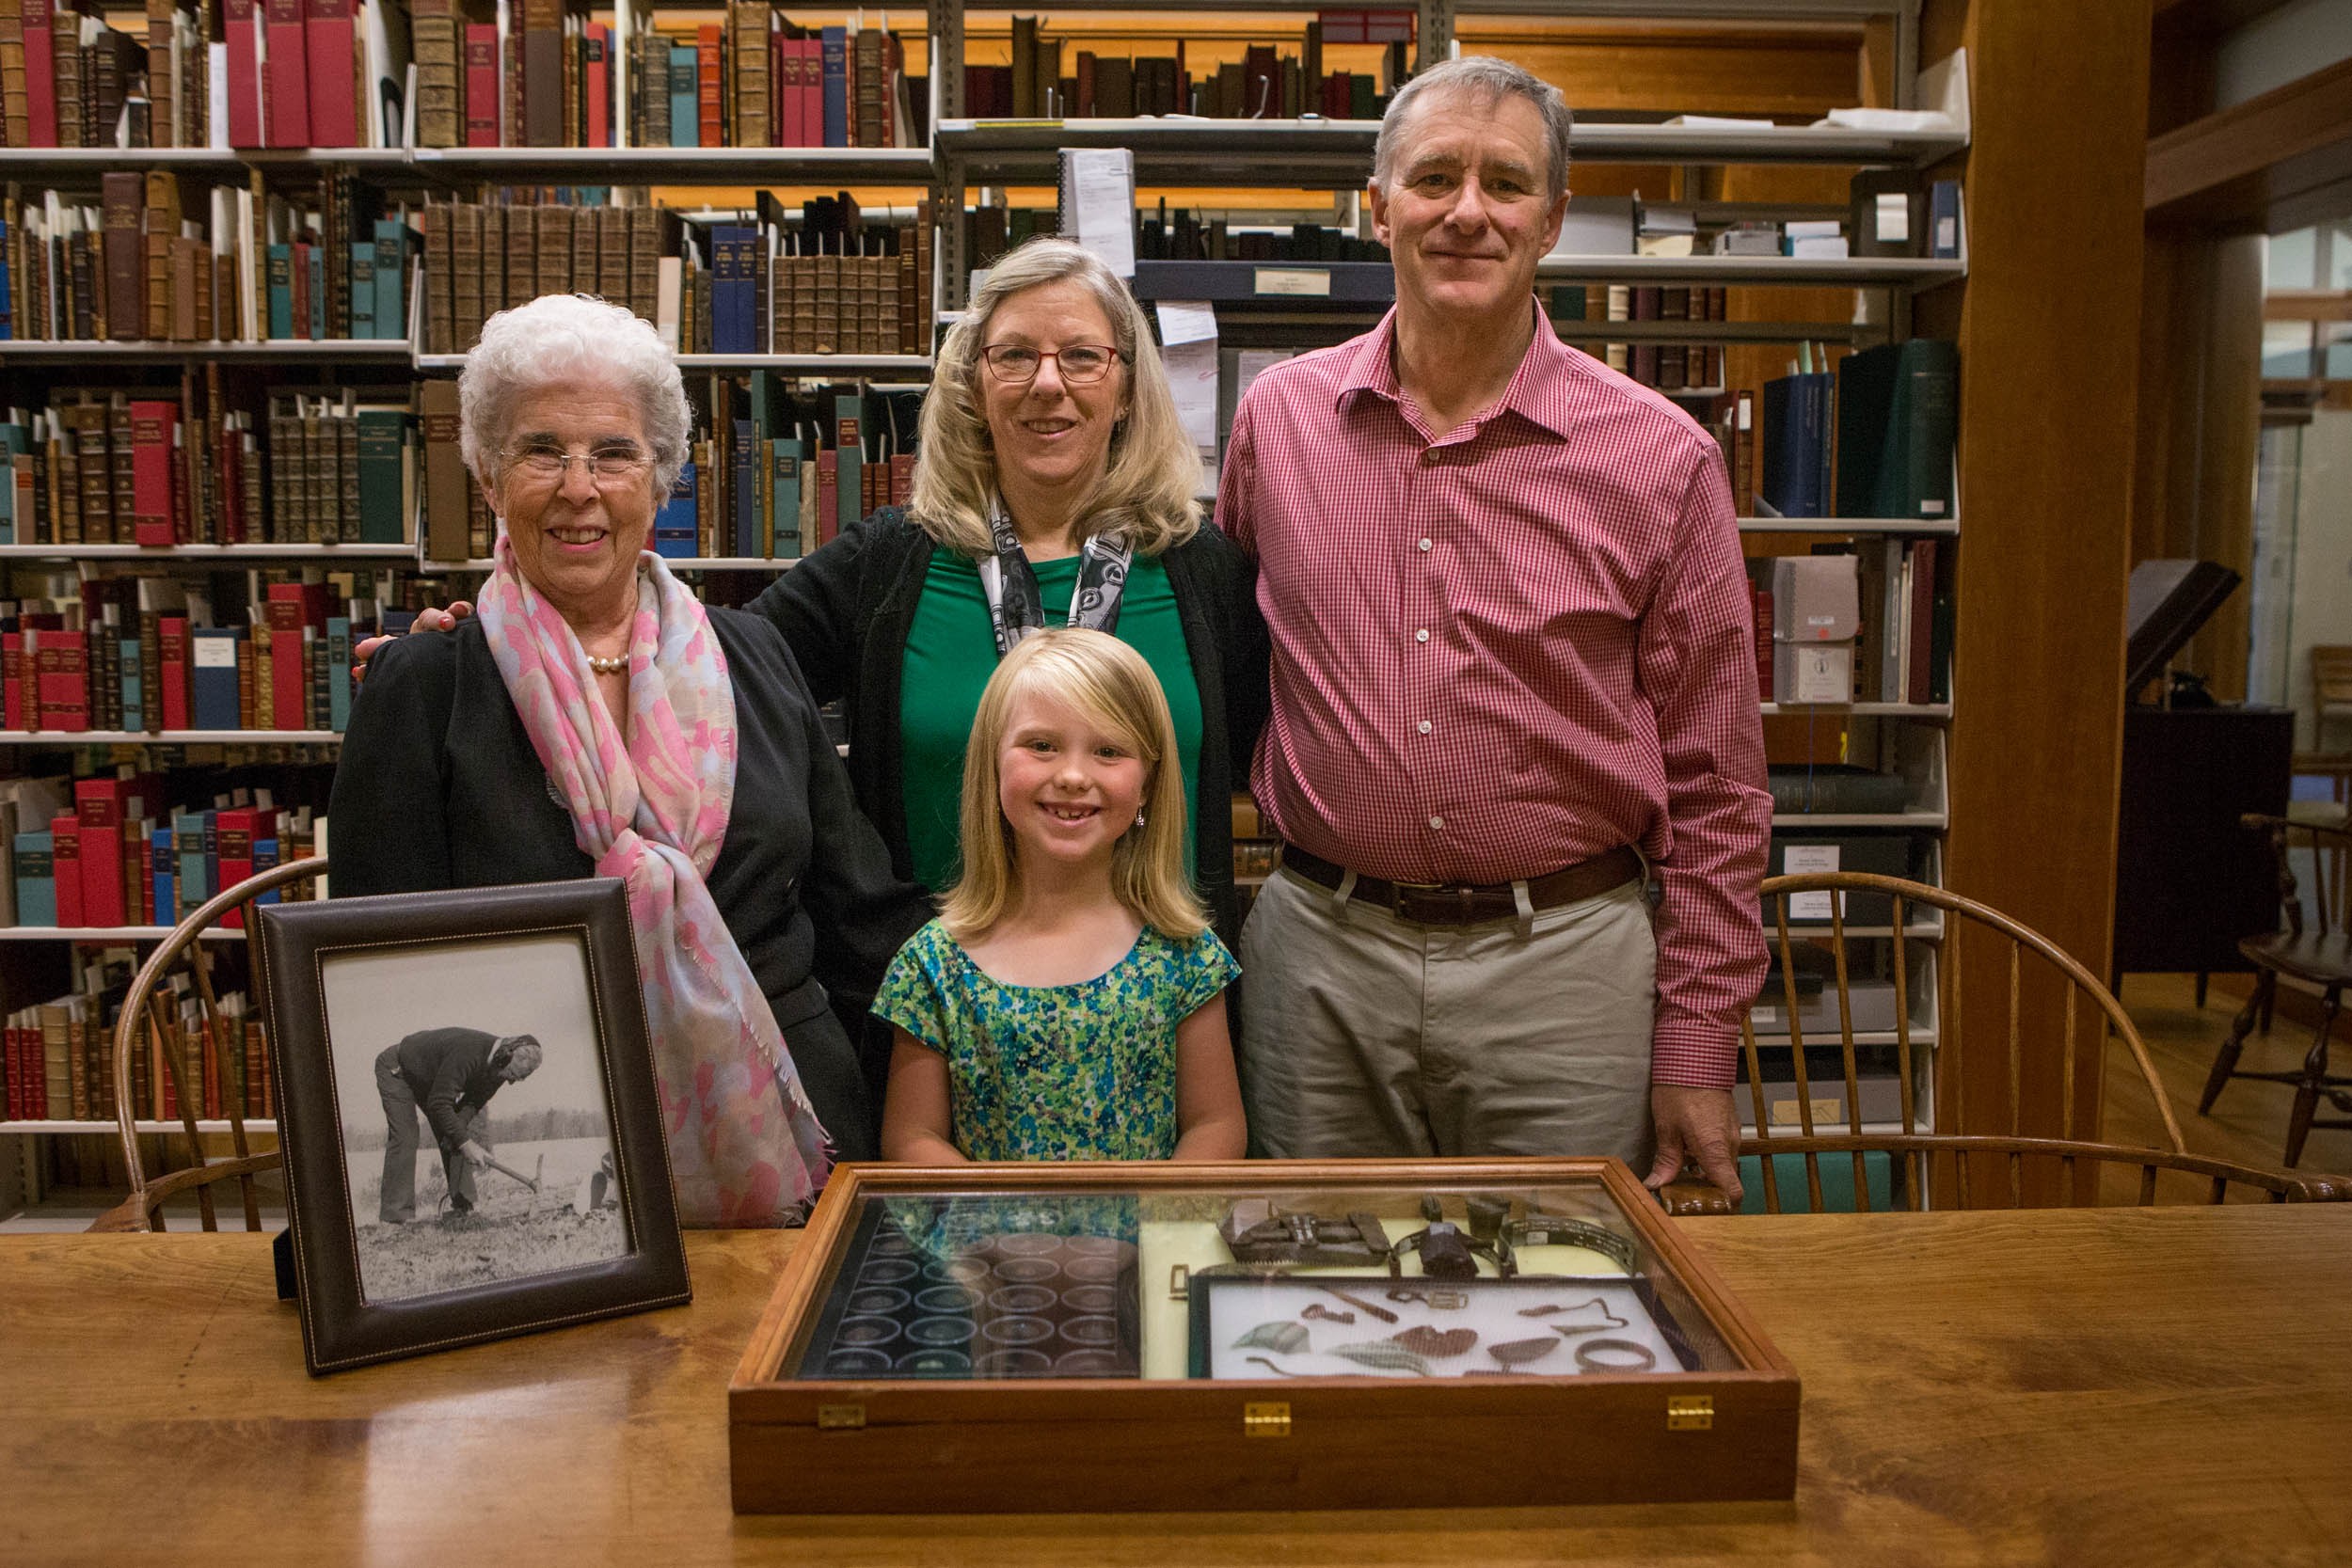 Raymond Shaw's family displays the donation of his Civil War artifacts. From left to right: Gretta Shaw, Lori Pollard, Morgan Shaw (center), and David Shaw. (Photo by Sanjay Suchak/University Communications)